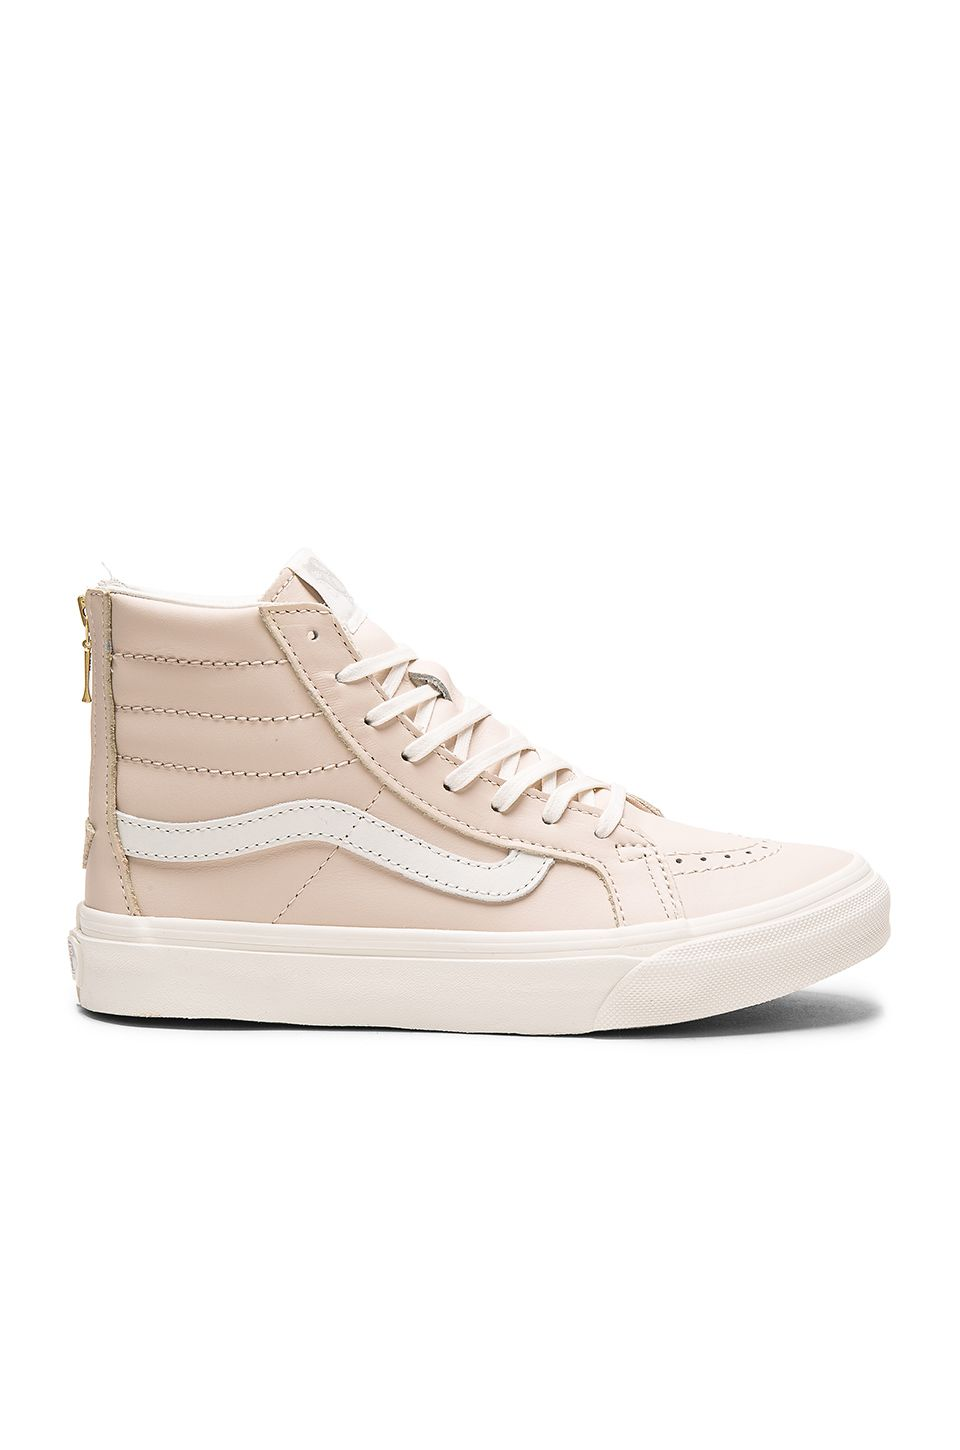 Vans Leather Sk8-Hi Slim Zip Sneaker in Whispering Pink & Blanc de Blanc